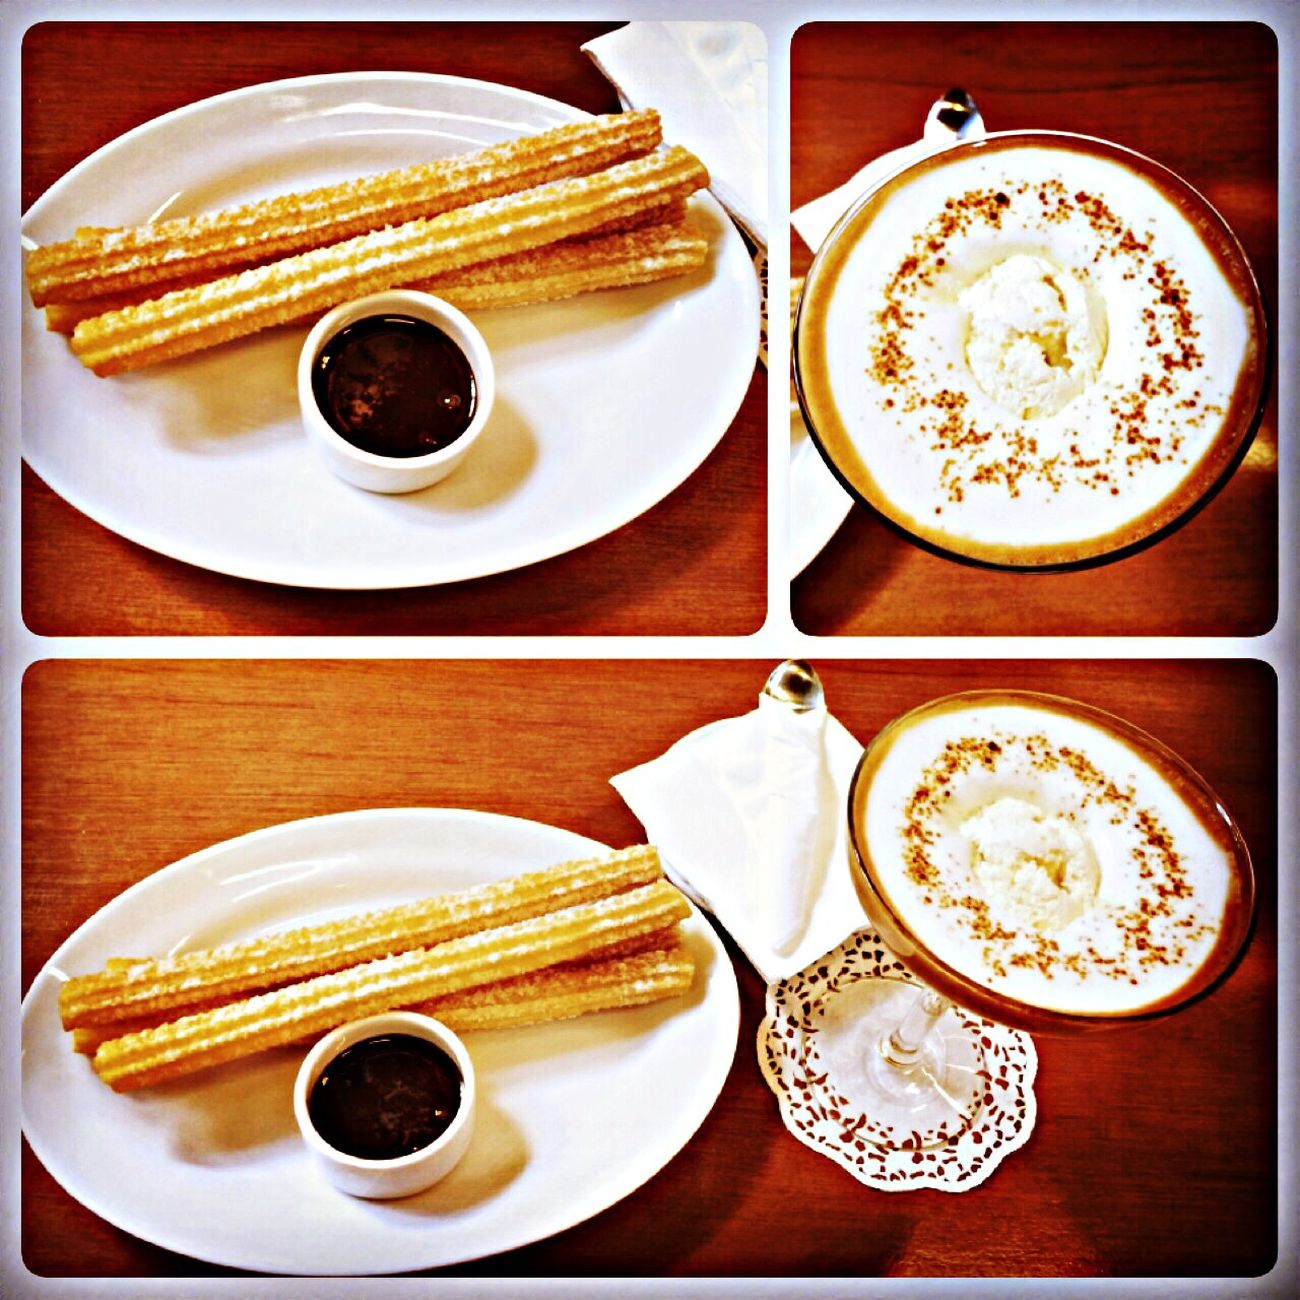 4 churros with dark chocolate + Affogato without alcohol Taking Photos Enjoying Life Coffee Churros